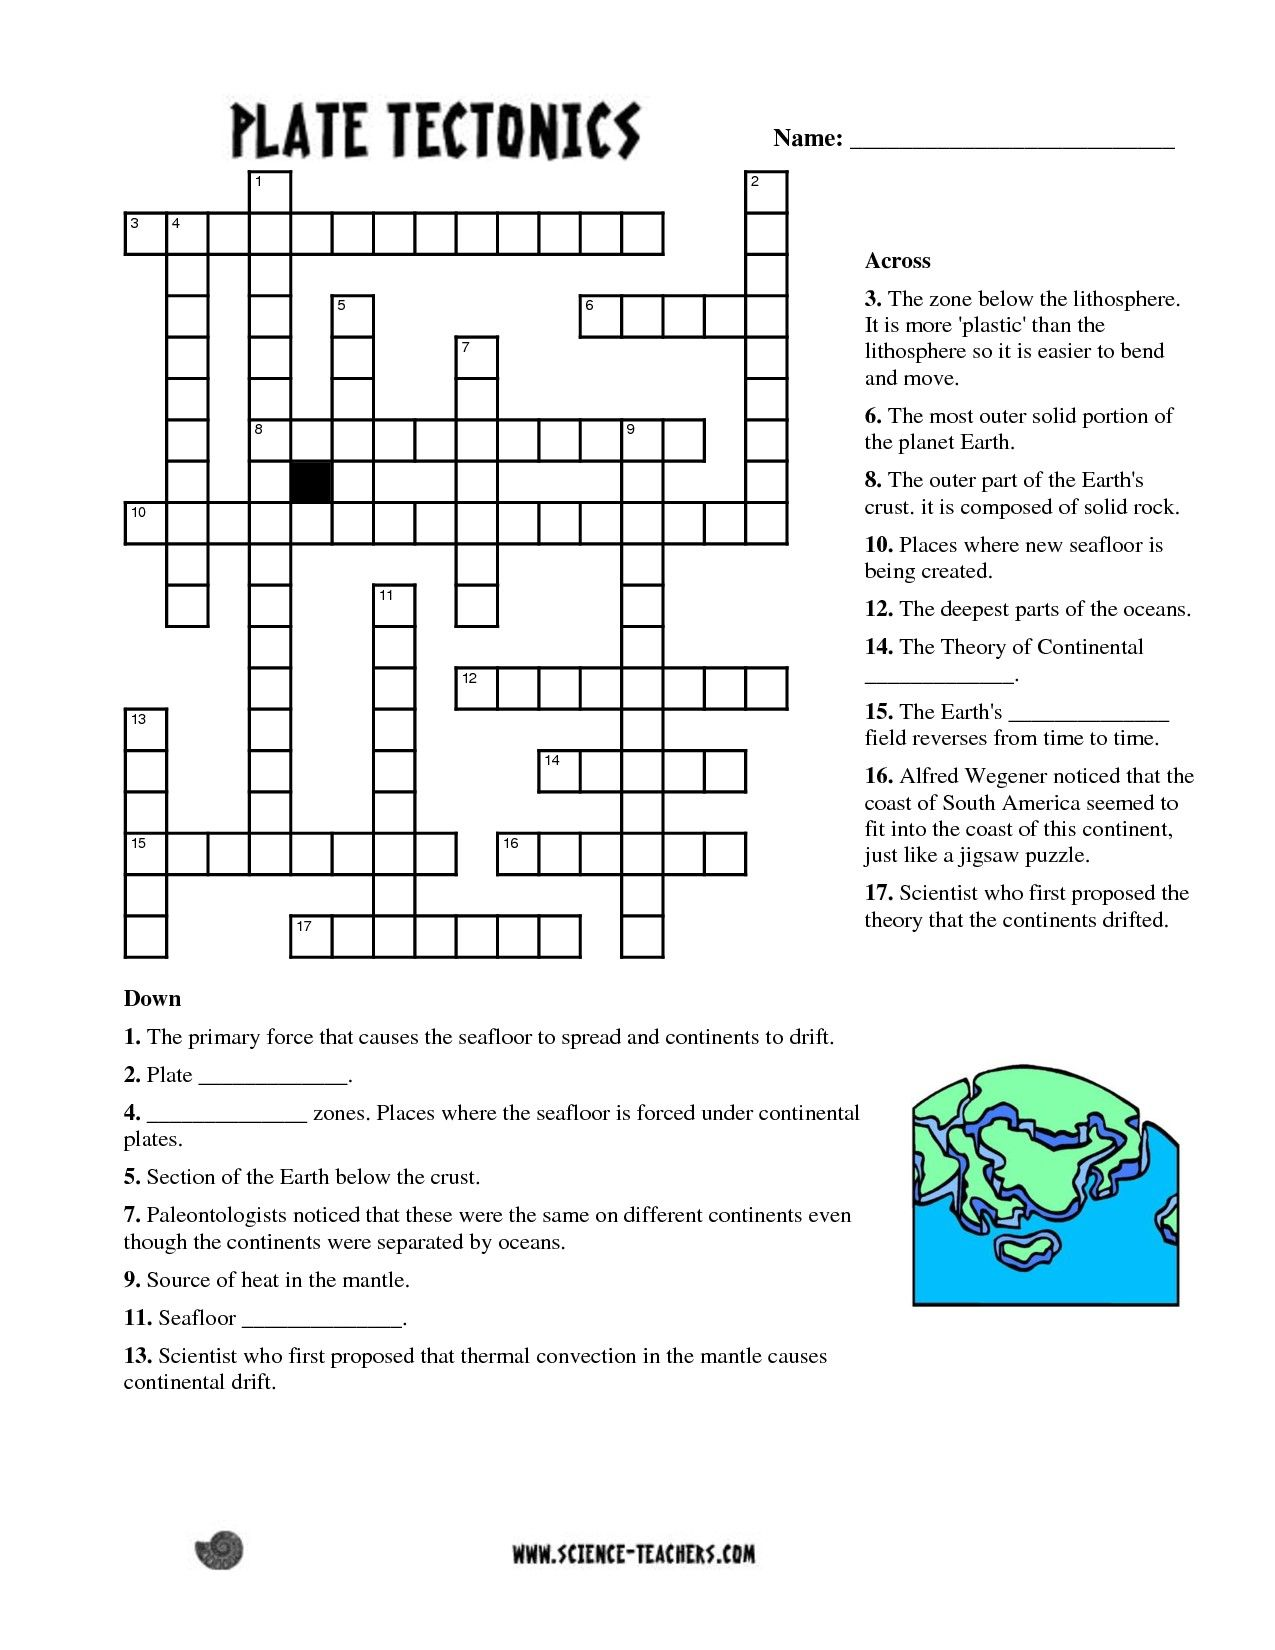 You Can Download Fresh Periodic Table Groups Crossword Clue At Here Https Www Zavalen Info 201 Science Worksheets Printable Crossword Puzzles Plate Tectonics